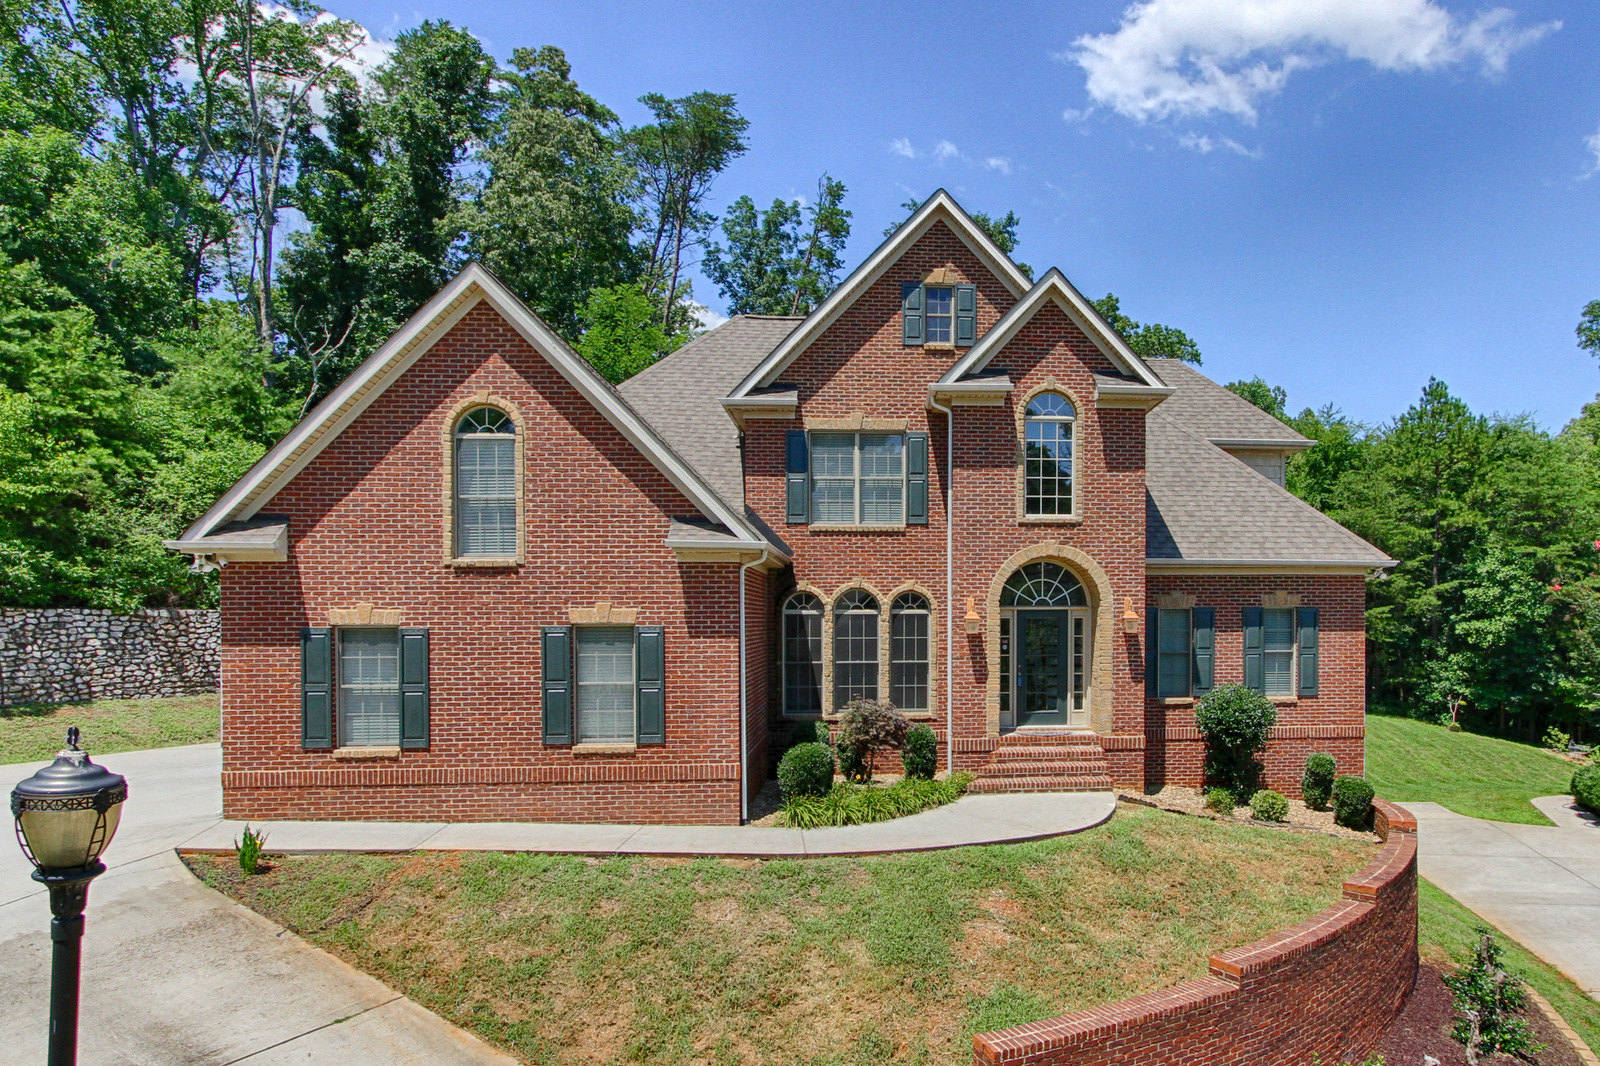 1274 Bentley Park Lane, Knoxville, TN 37922